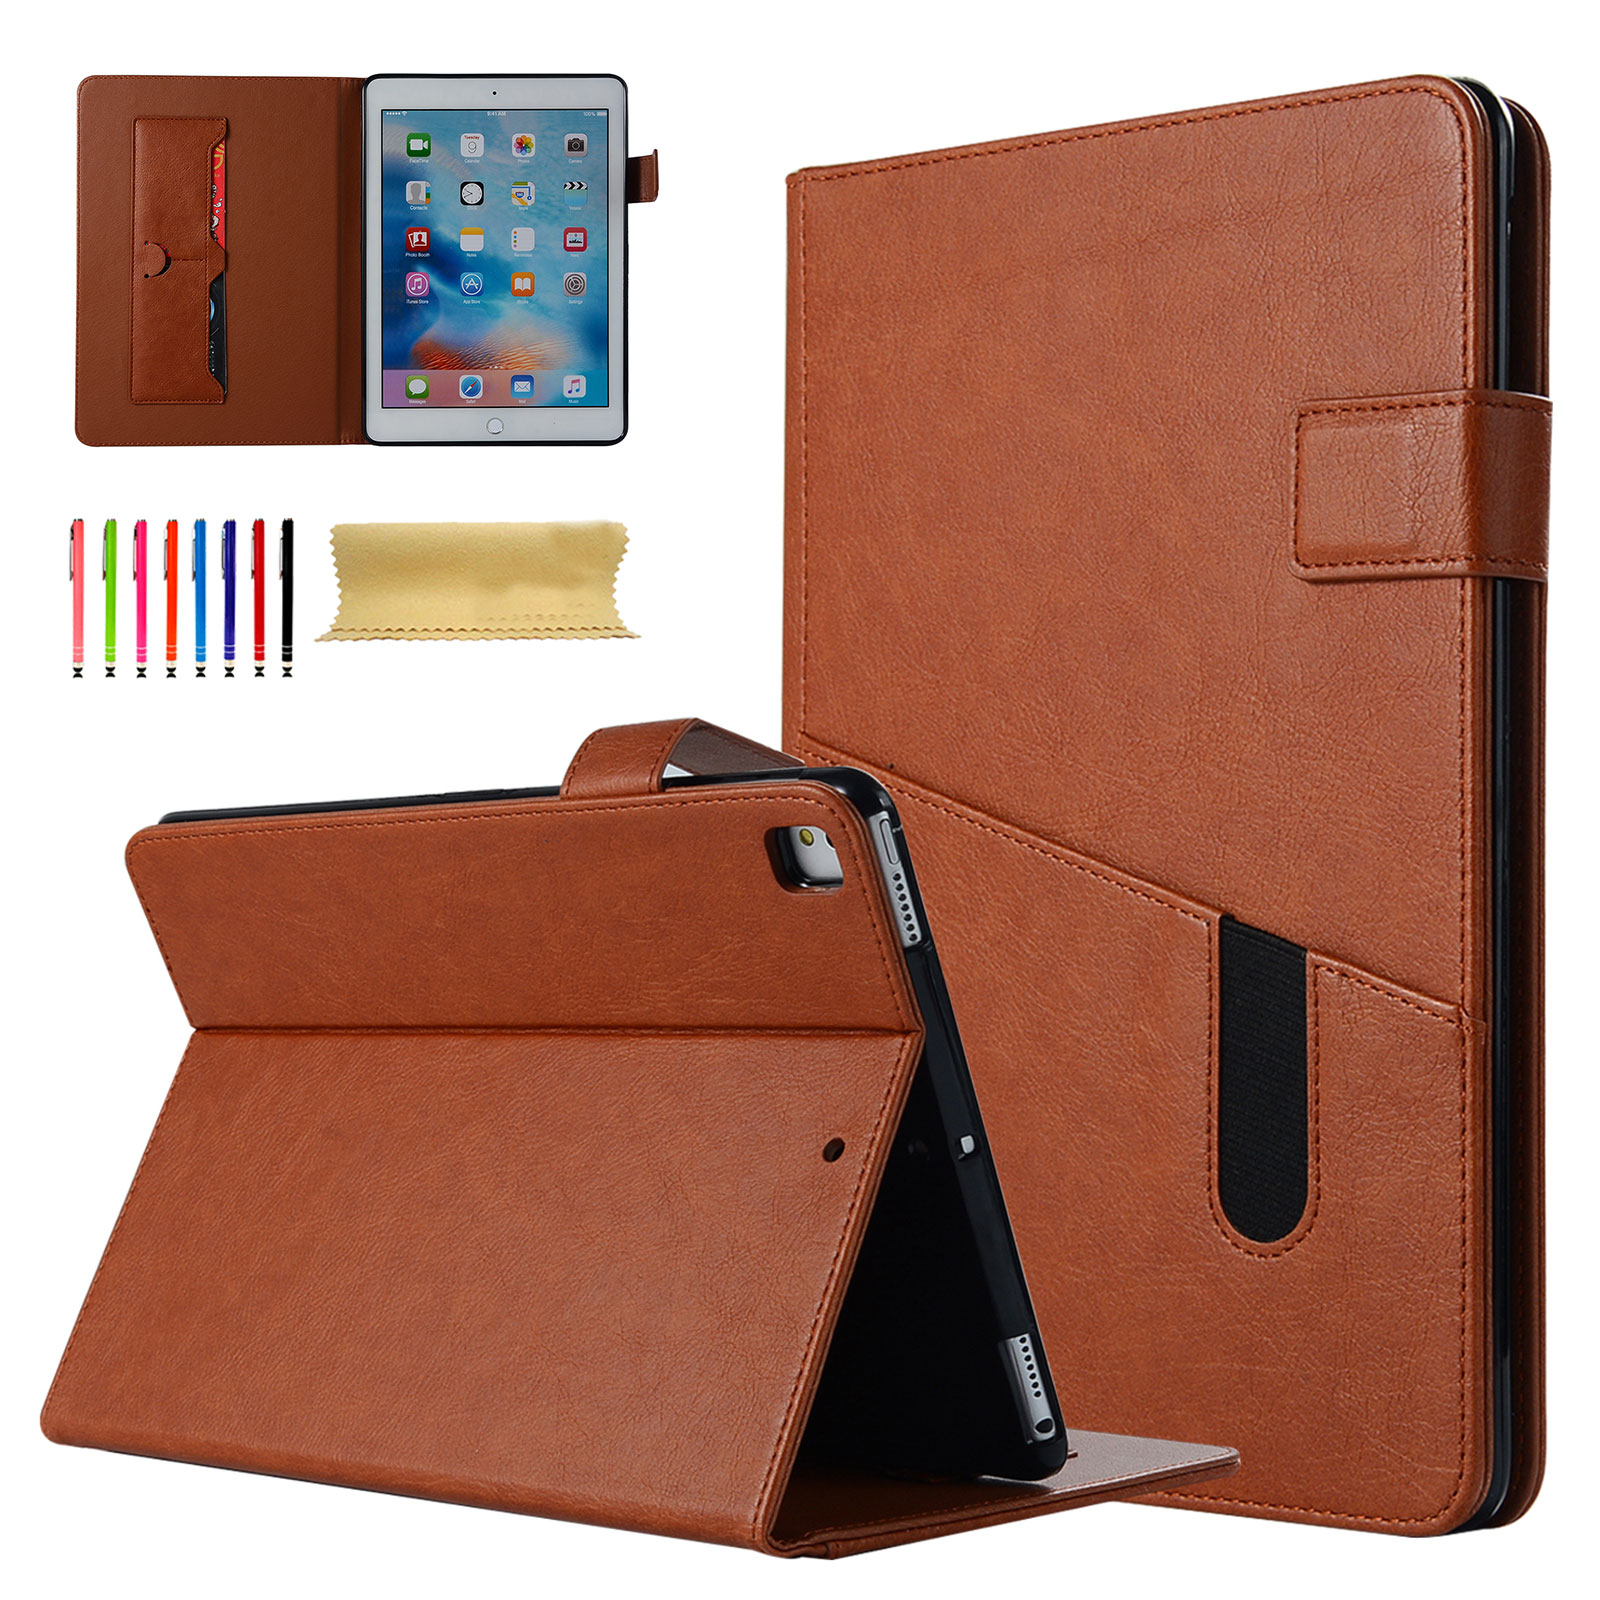 Goodest iPad 9.7 2018/2017, iPad Air 2, iPad Air Case, iPad Pro 9.7 Case Vintage Corner Protection Folio Stand Smart Shell Auto Sleep Wake with Document Pocket PU Leather Slim Fit Cover, Brown